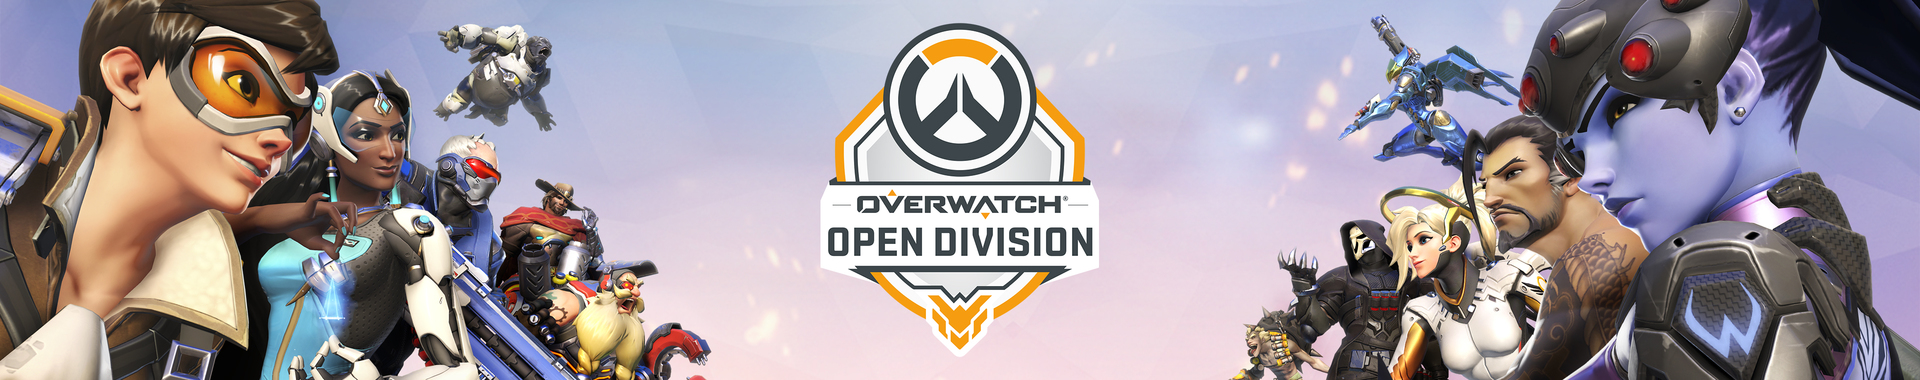 OW Open Division: Season 2